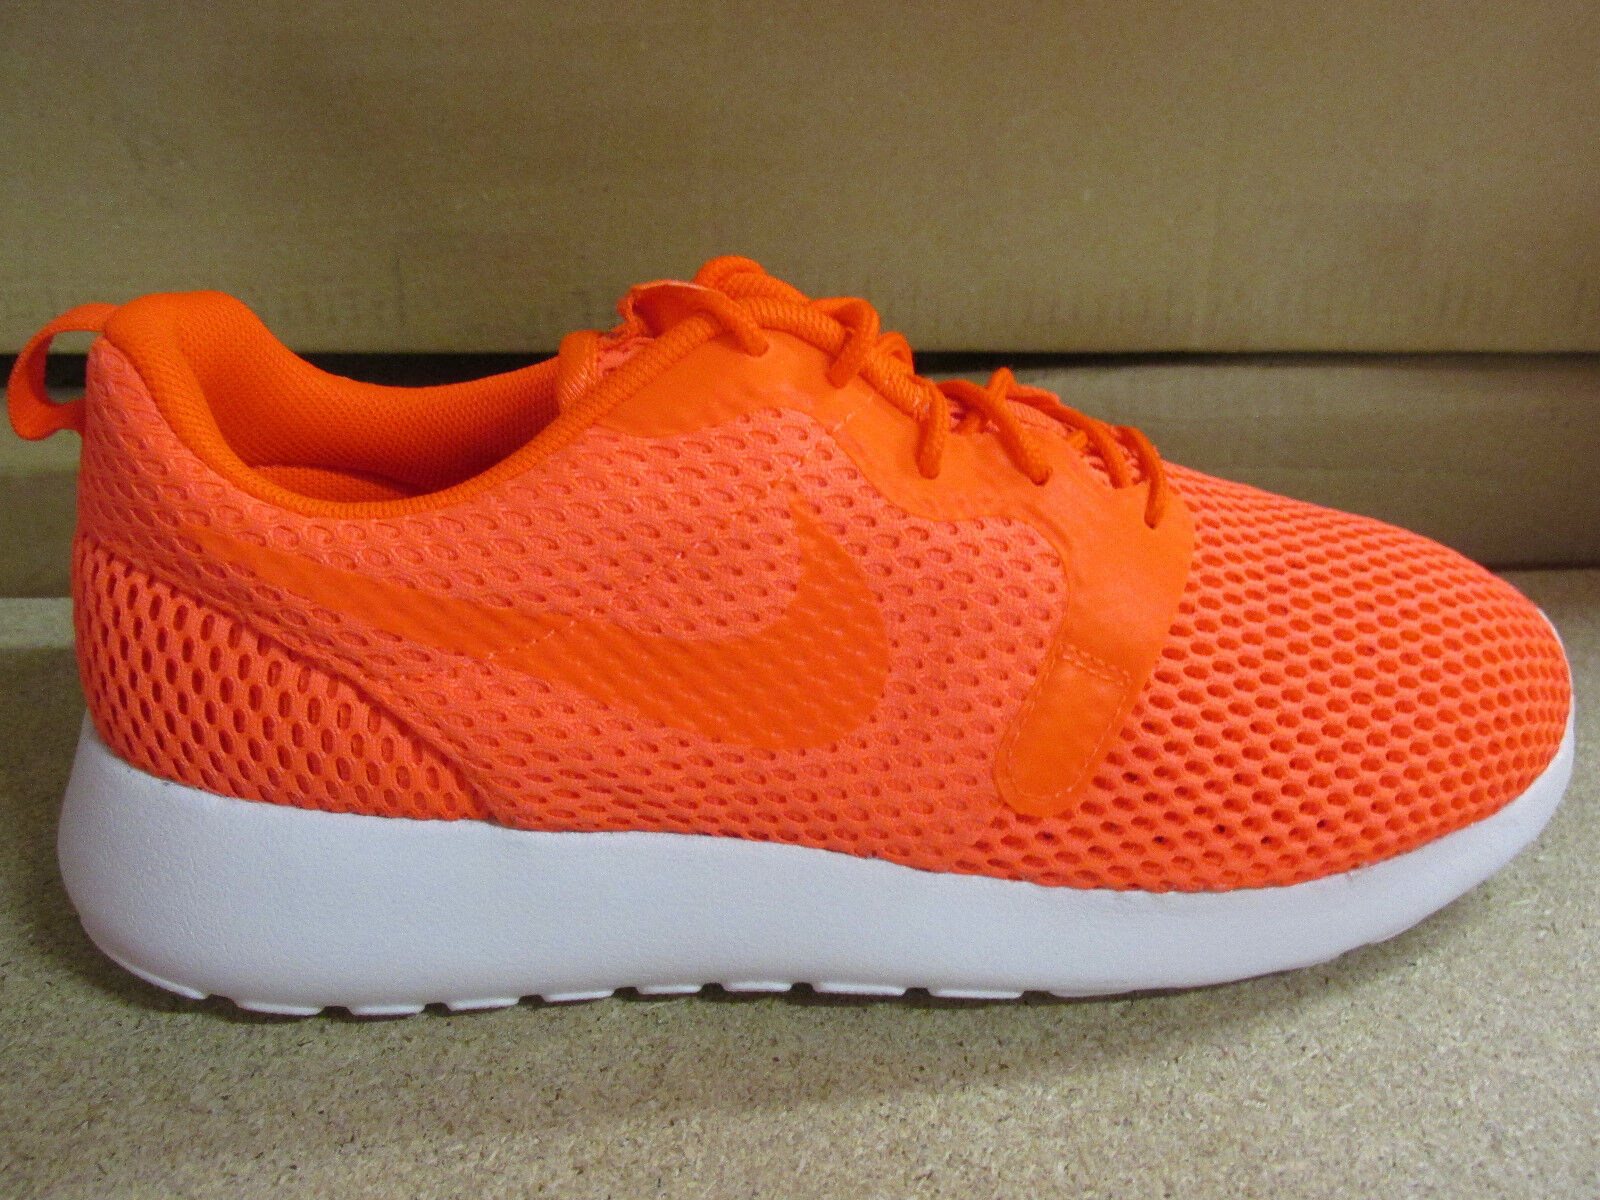 Nike Mens Roshe One HYP BR Mens Nike Trainers 833125 800 Sneakers Shoes e07a32